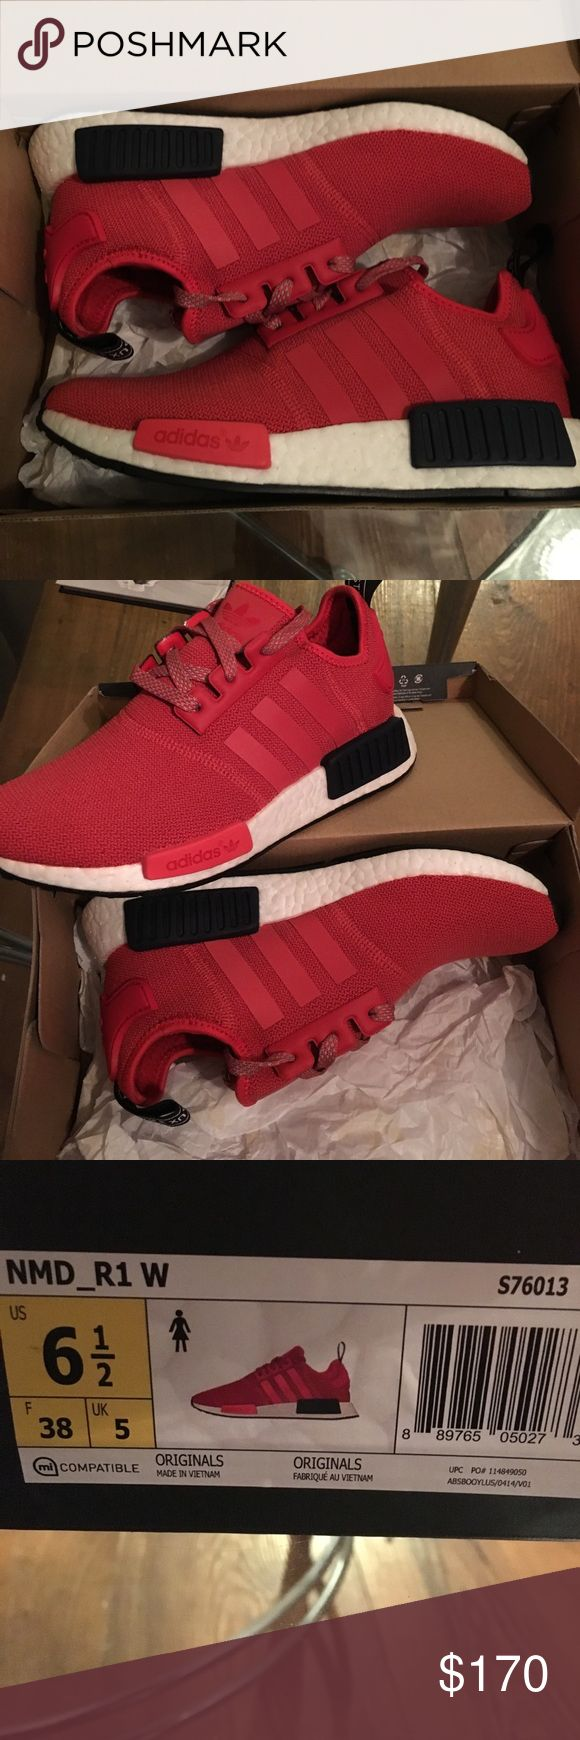 Adidas NMD women's size 6.5 Originals, brand new in the box. Women's size 6.5. Red with white and navy Adidas Shoes Sneakers